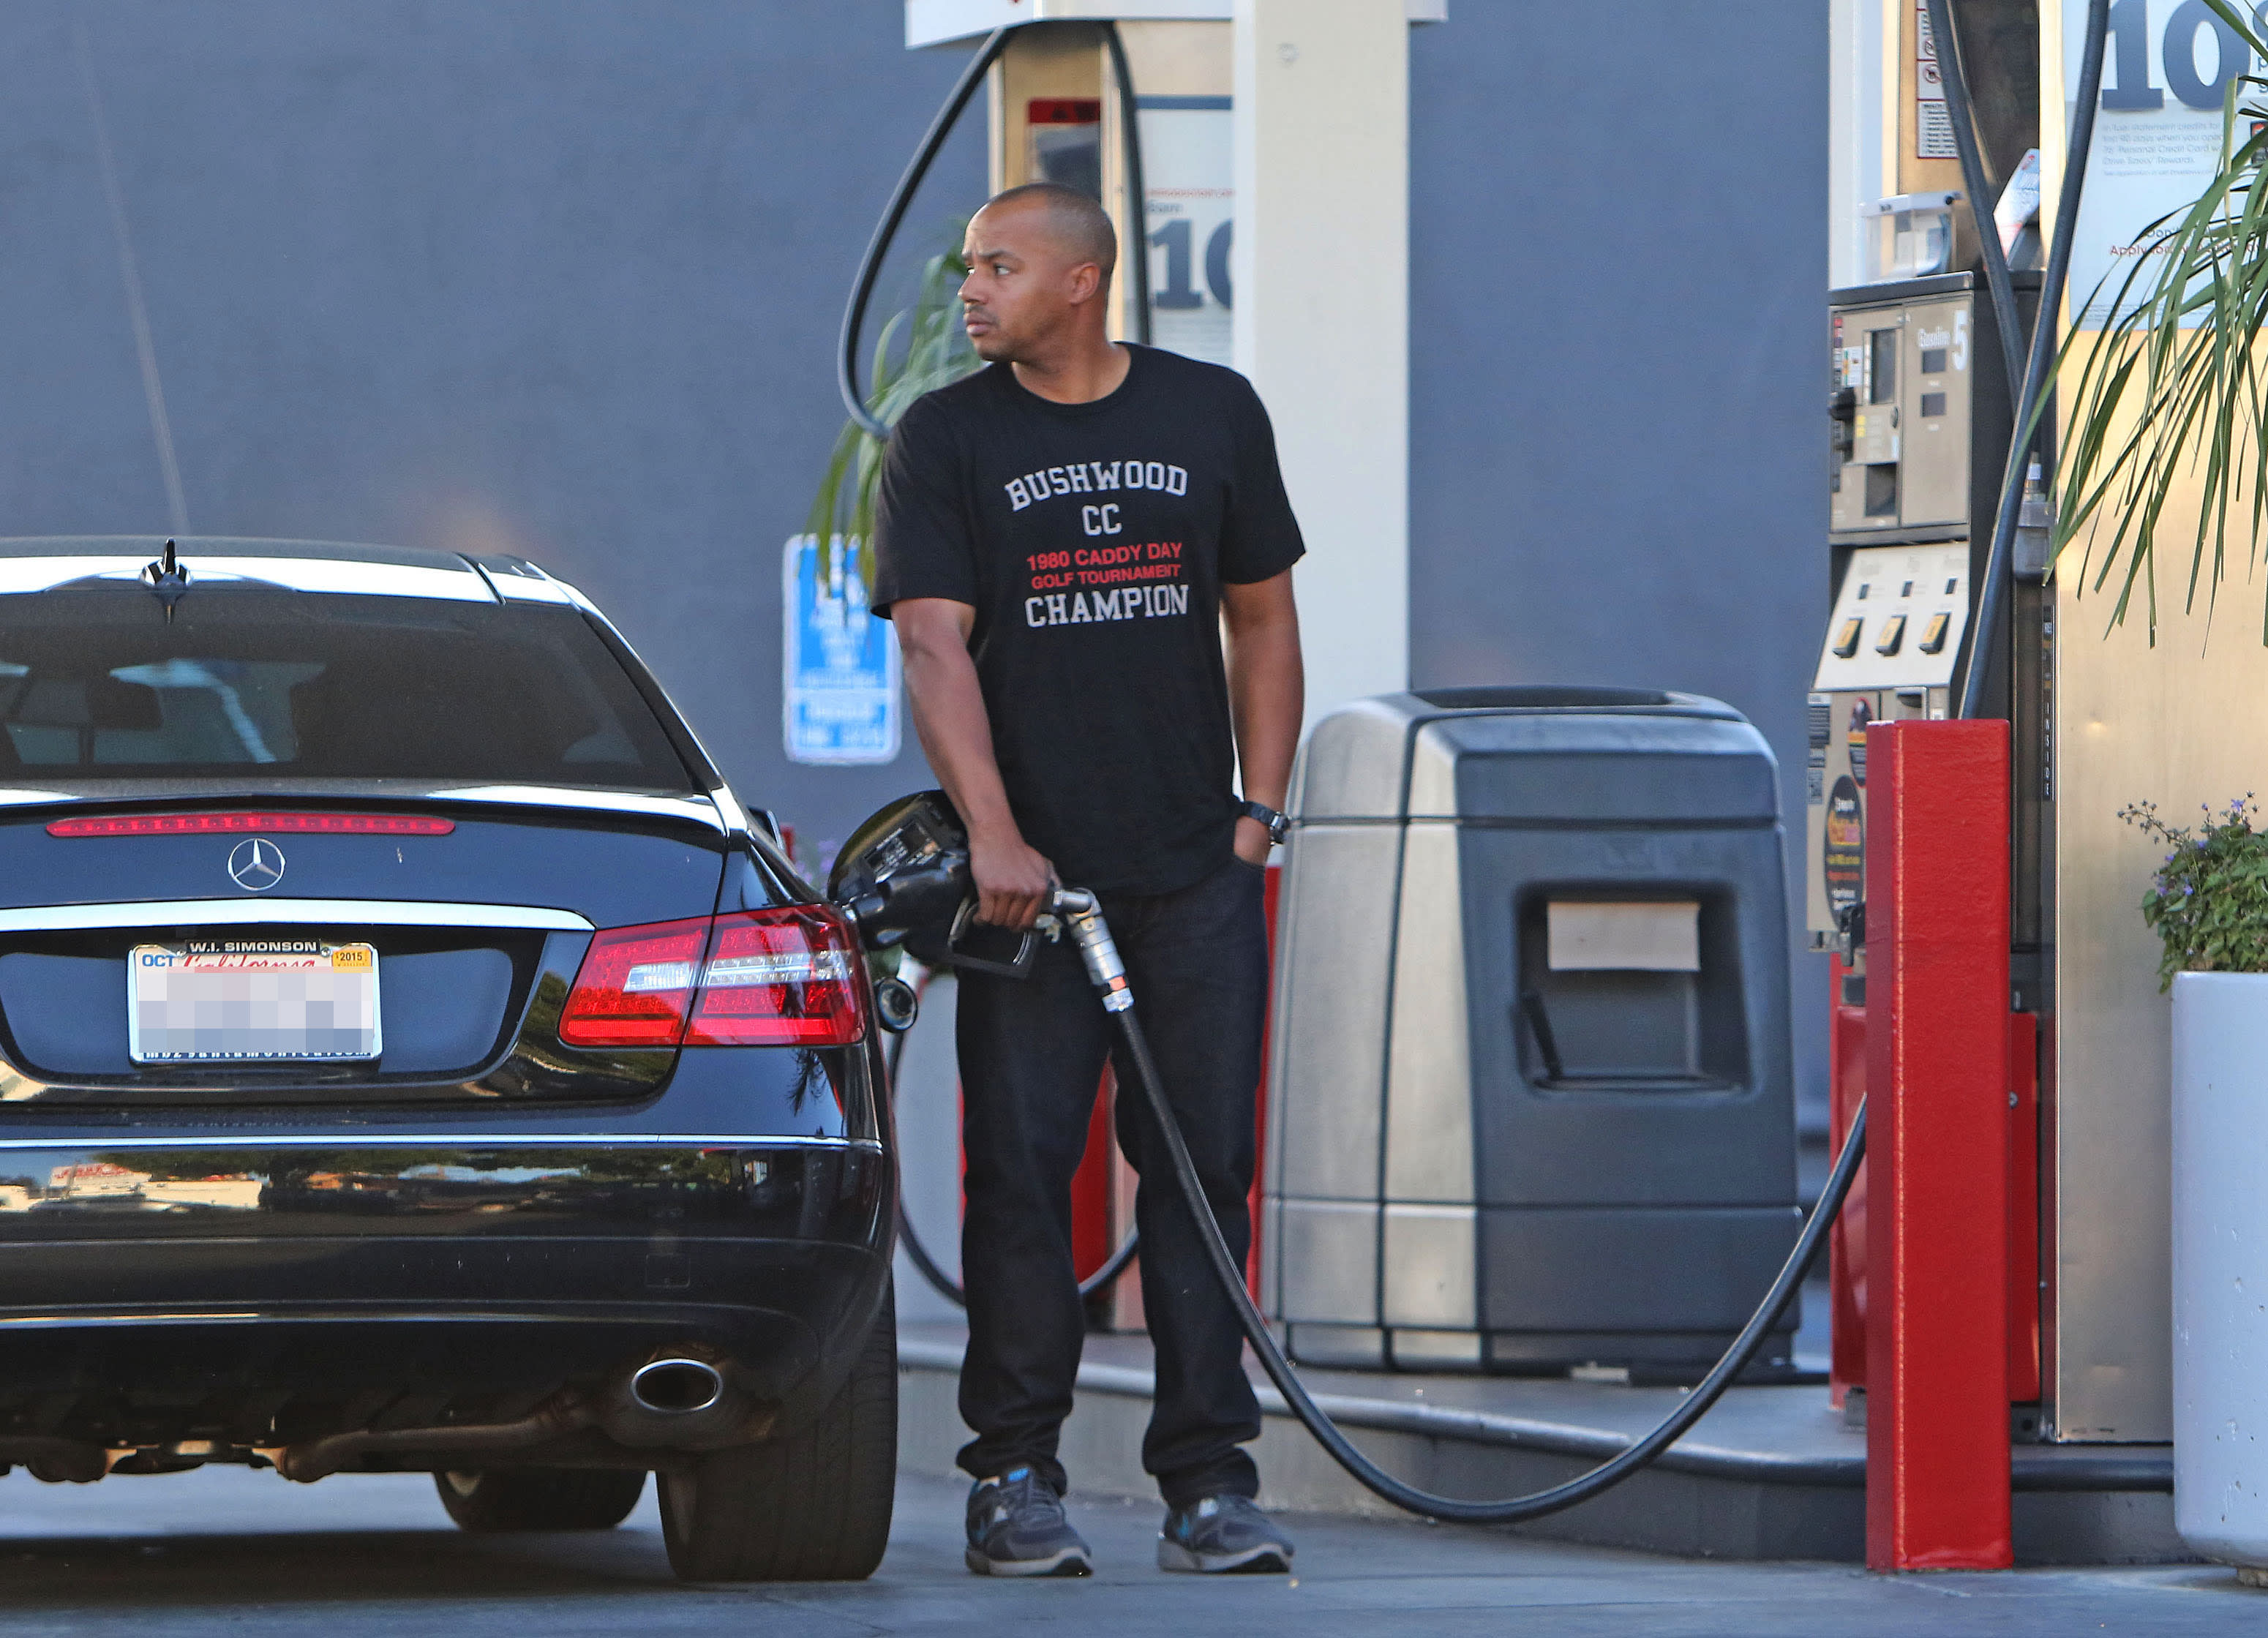 After attack on Saudis, US gasoline prices could rise even more